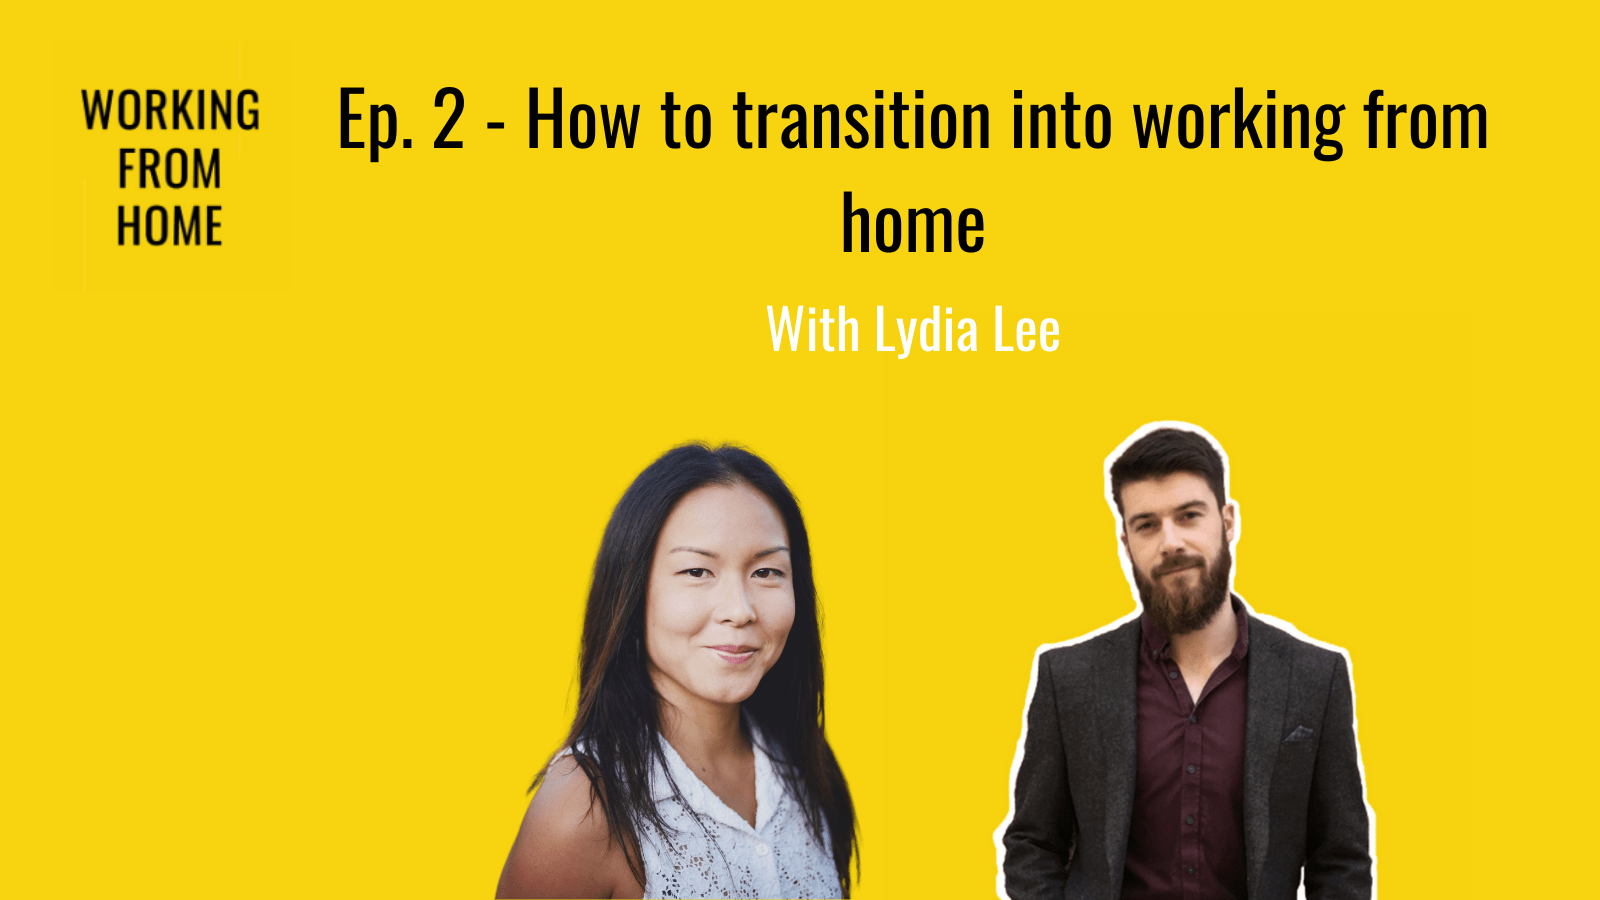 Working From Home Lydia Lee